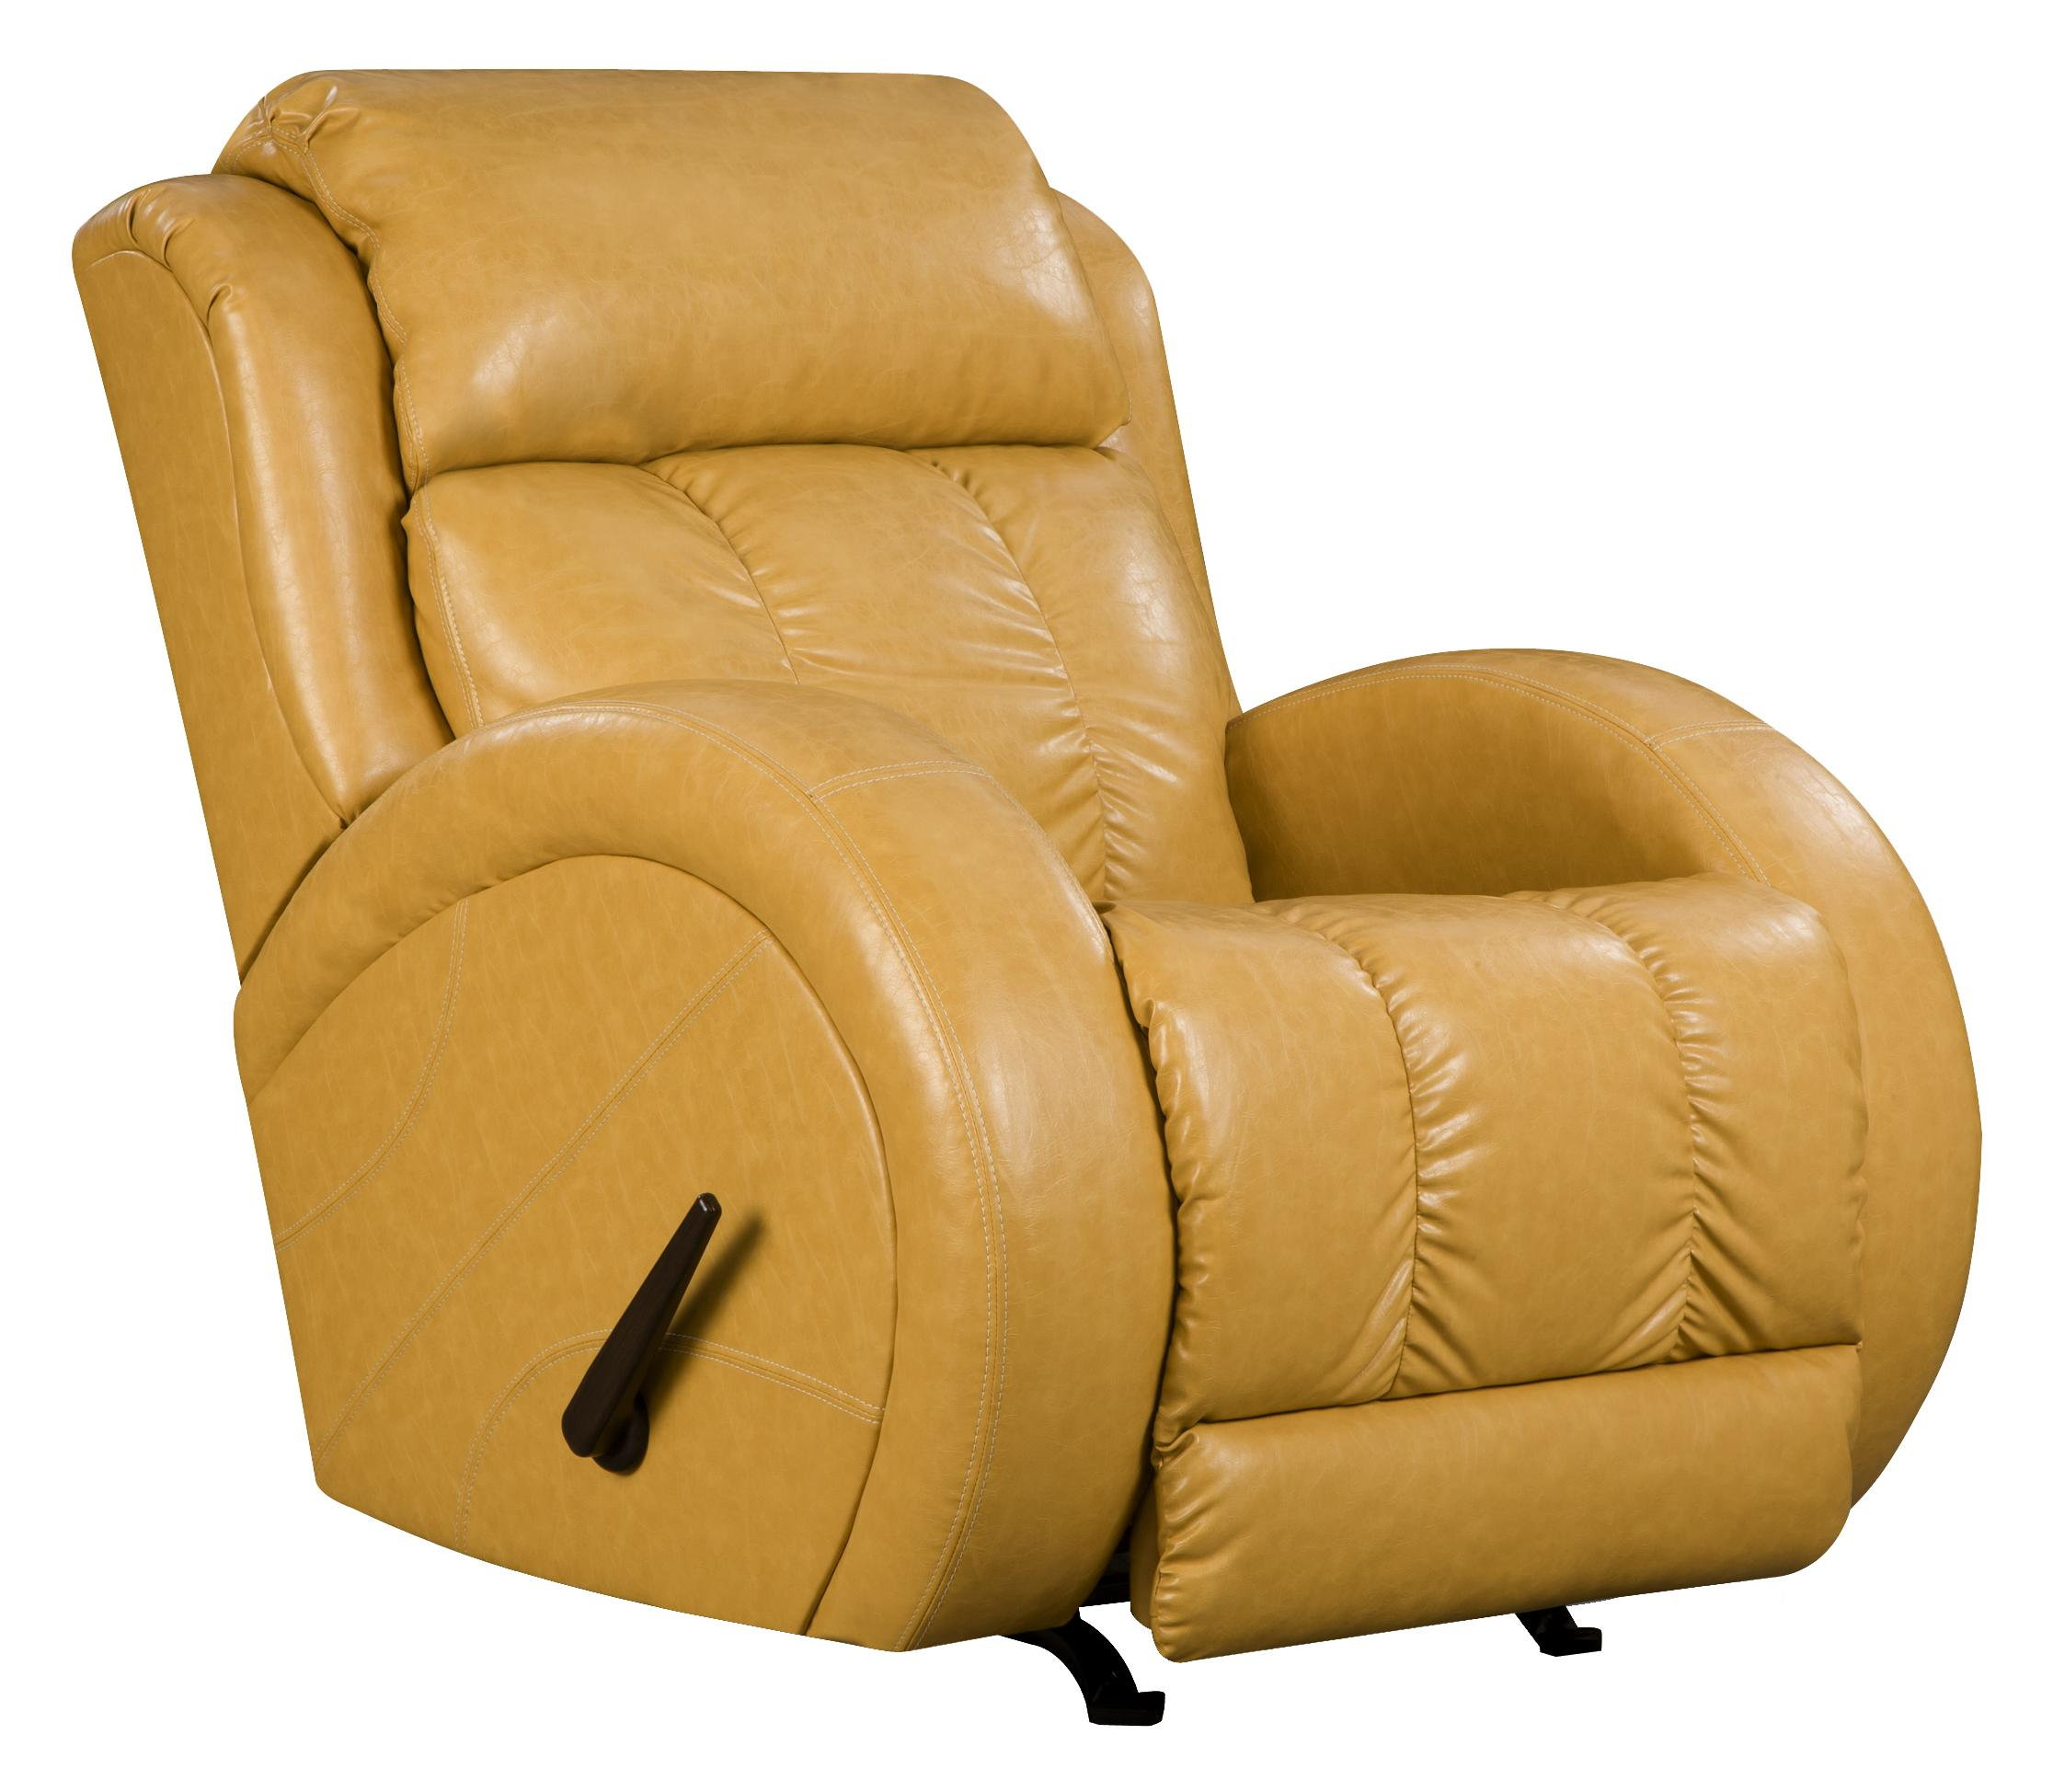 lay-flat recliner with sport style by southern motion | wolf and